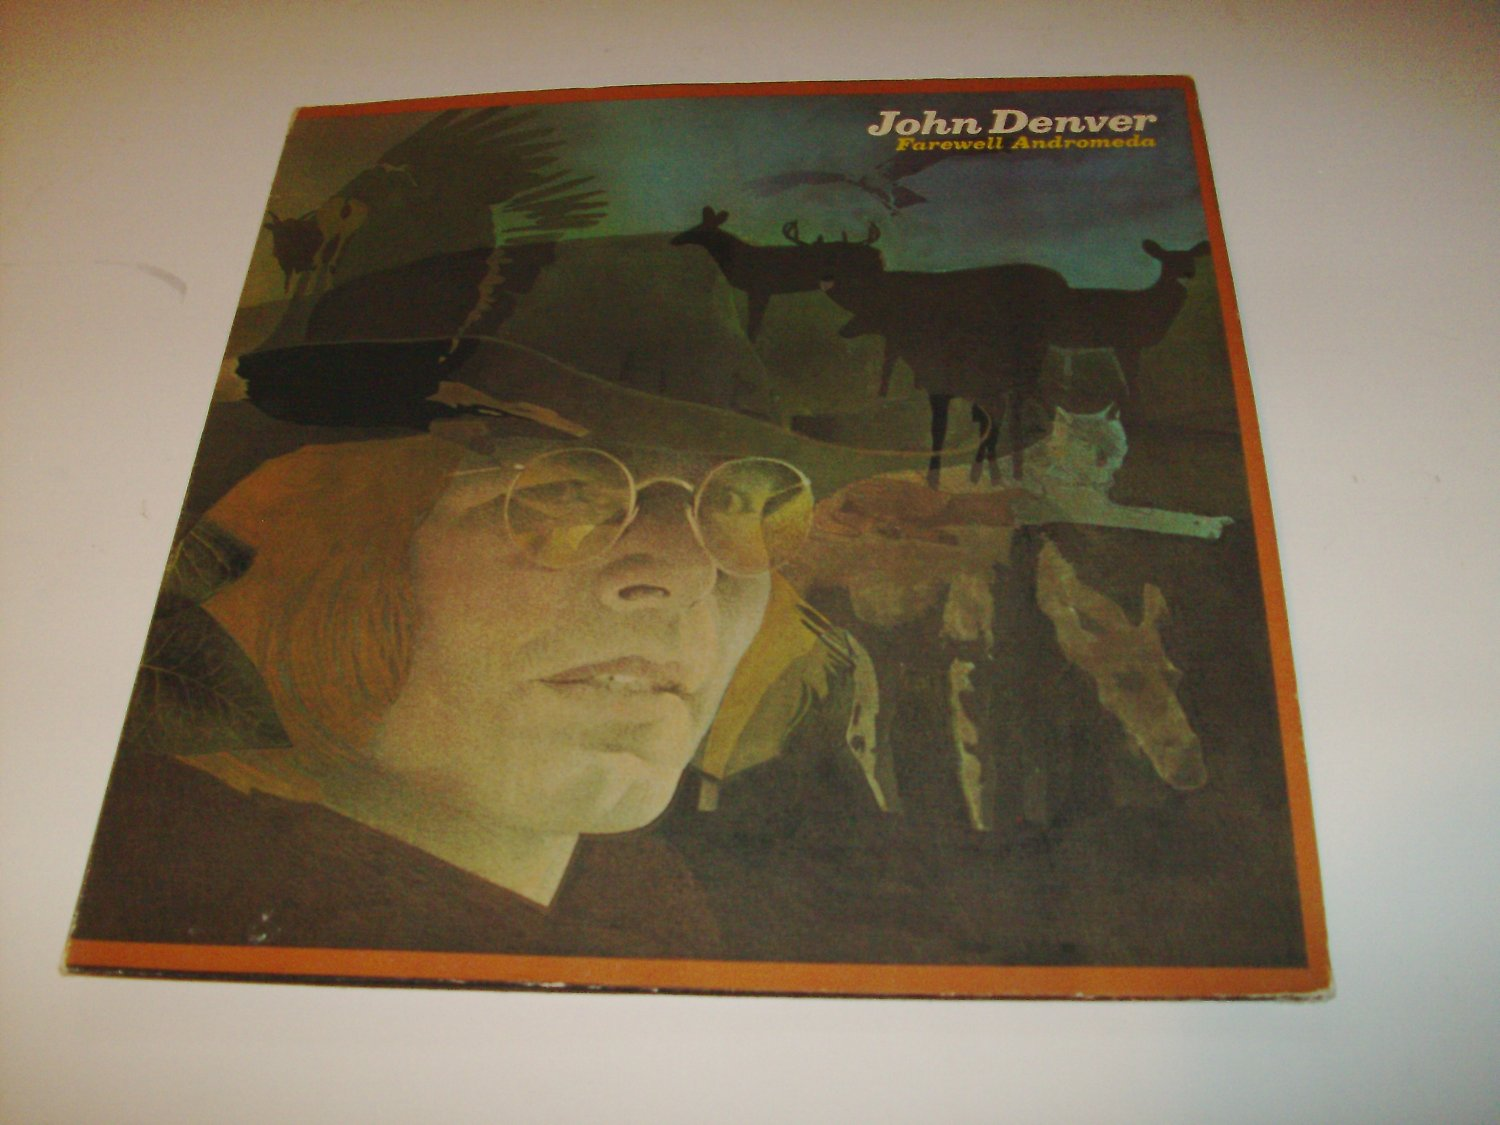 John Denver - Farewell Andromeda (APL1-0101) on 33 rpm Vinyl LP